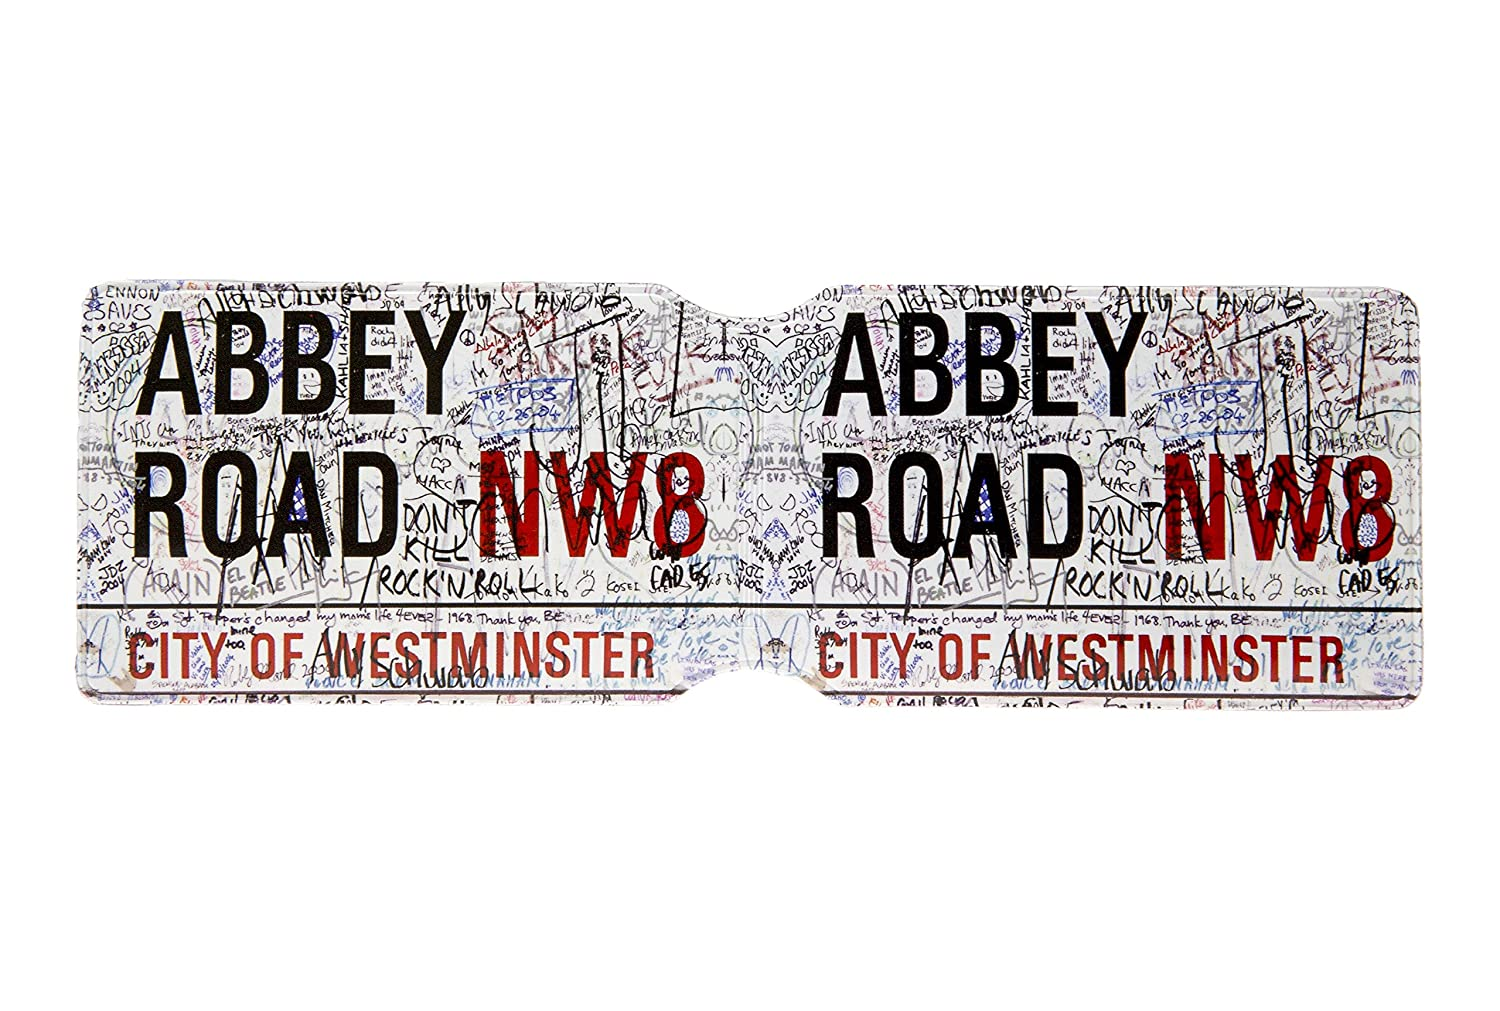 Abbey Road Oyster Card Holder Urbangift